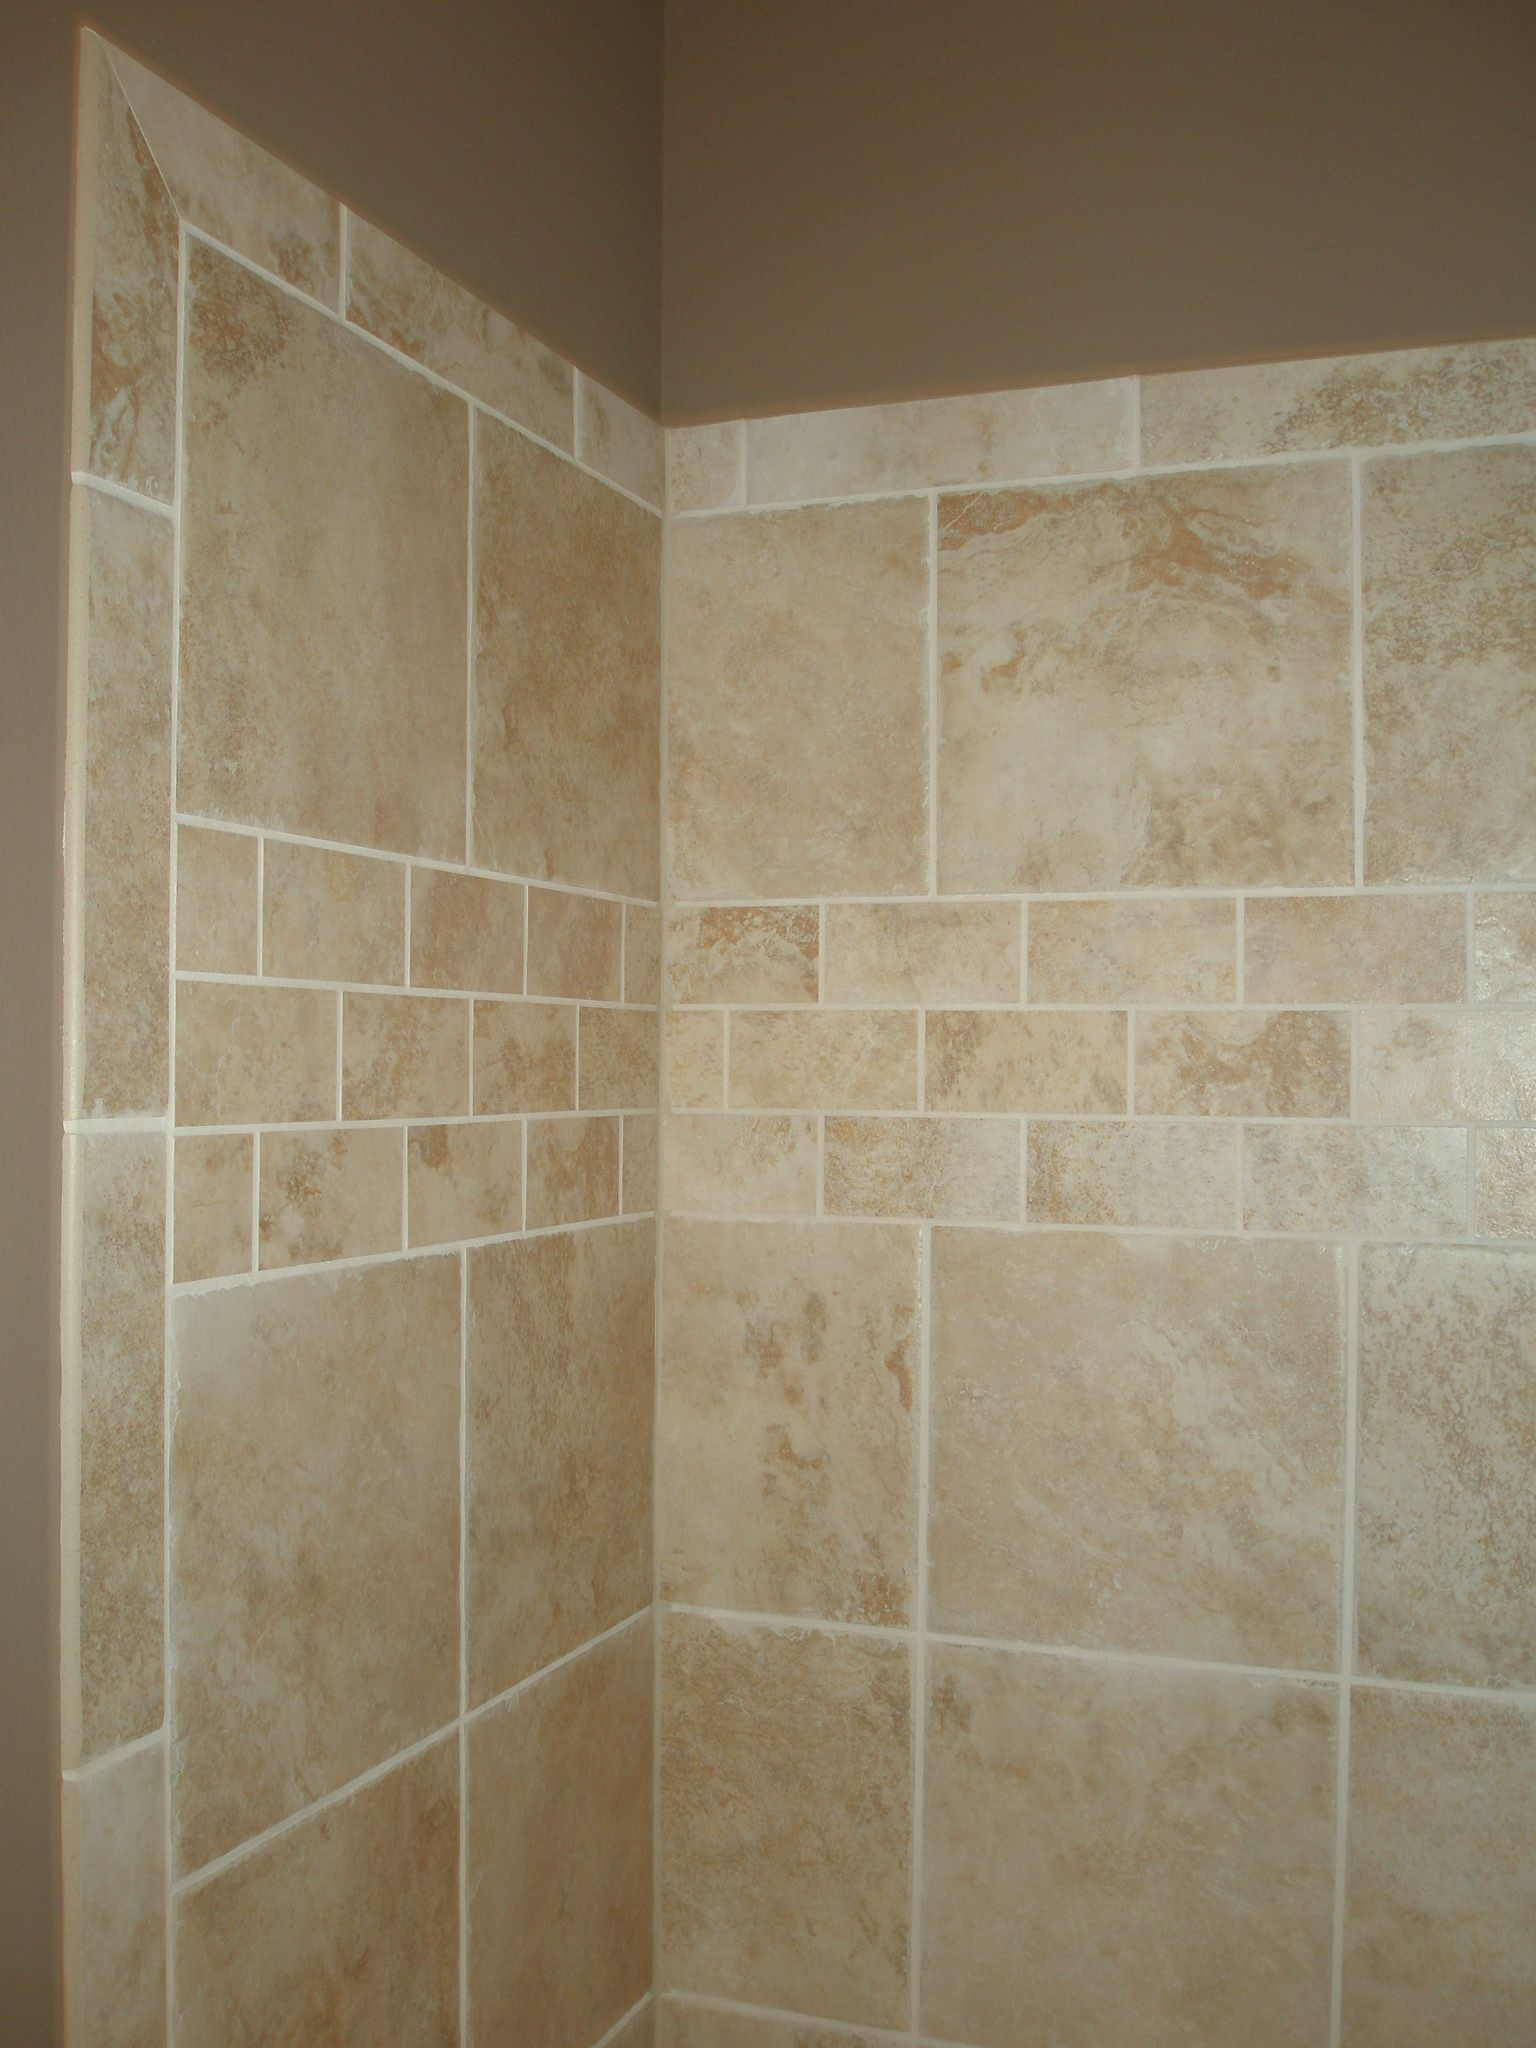 Almost exact to what i will do in the shower without the for Bathroom designs 12x12